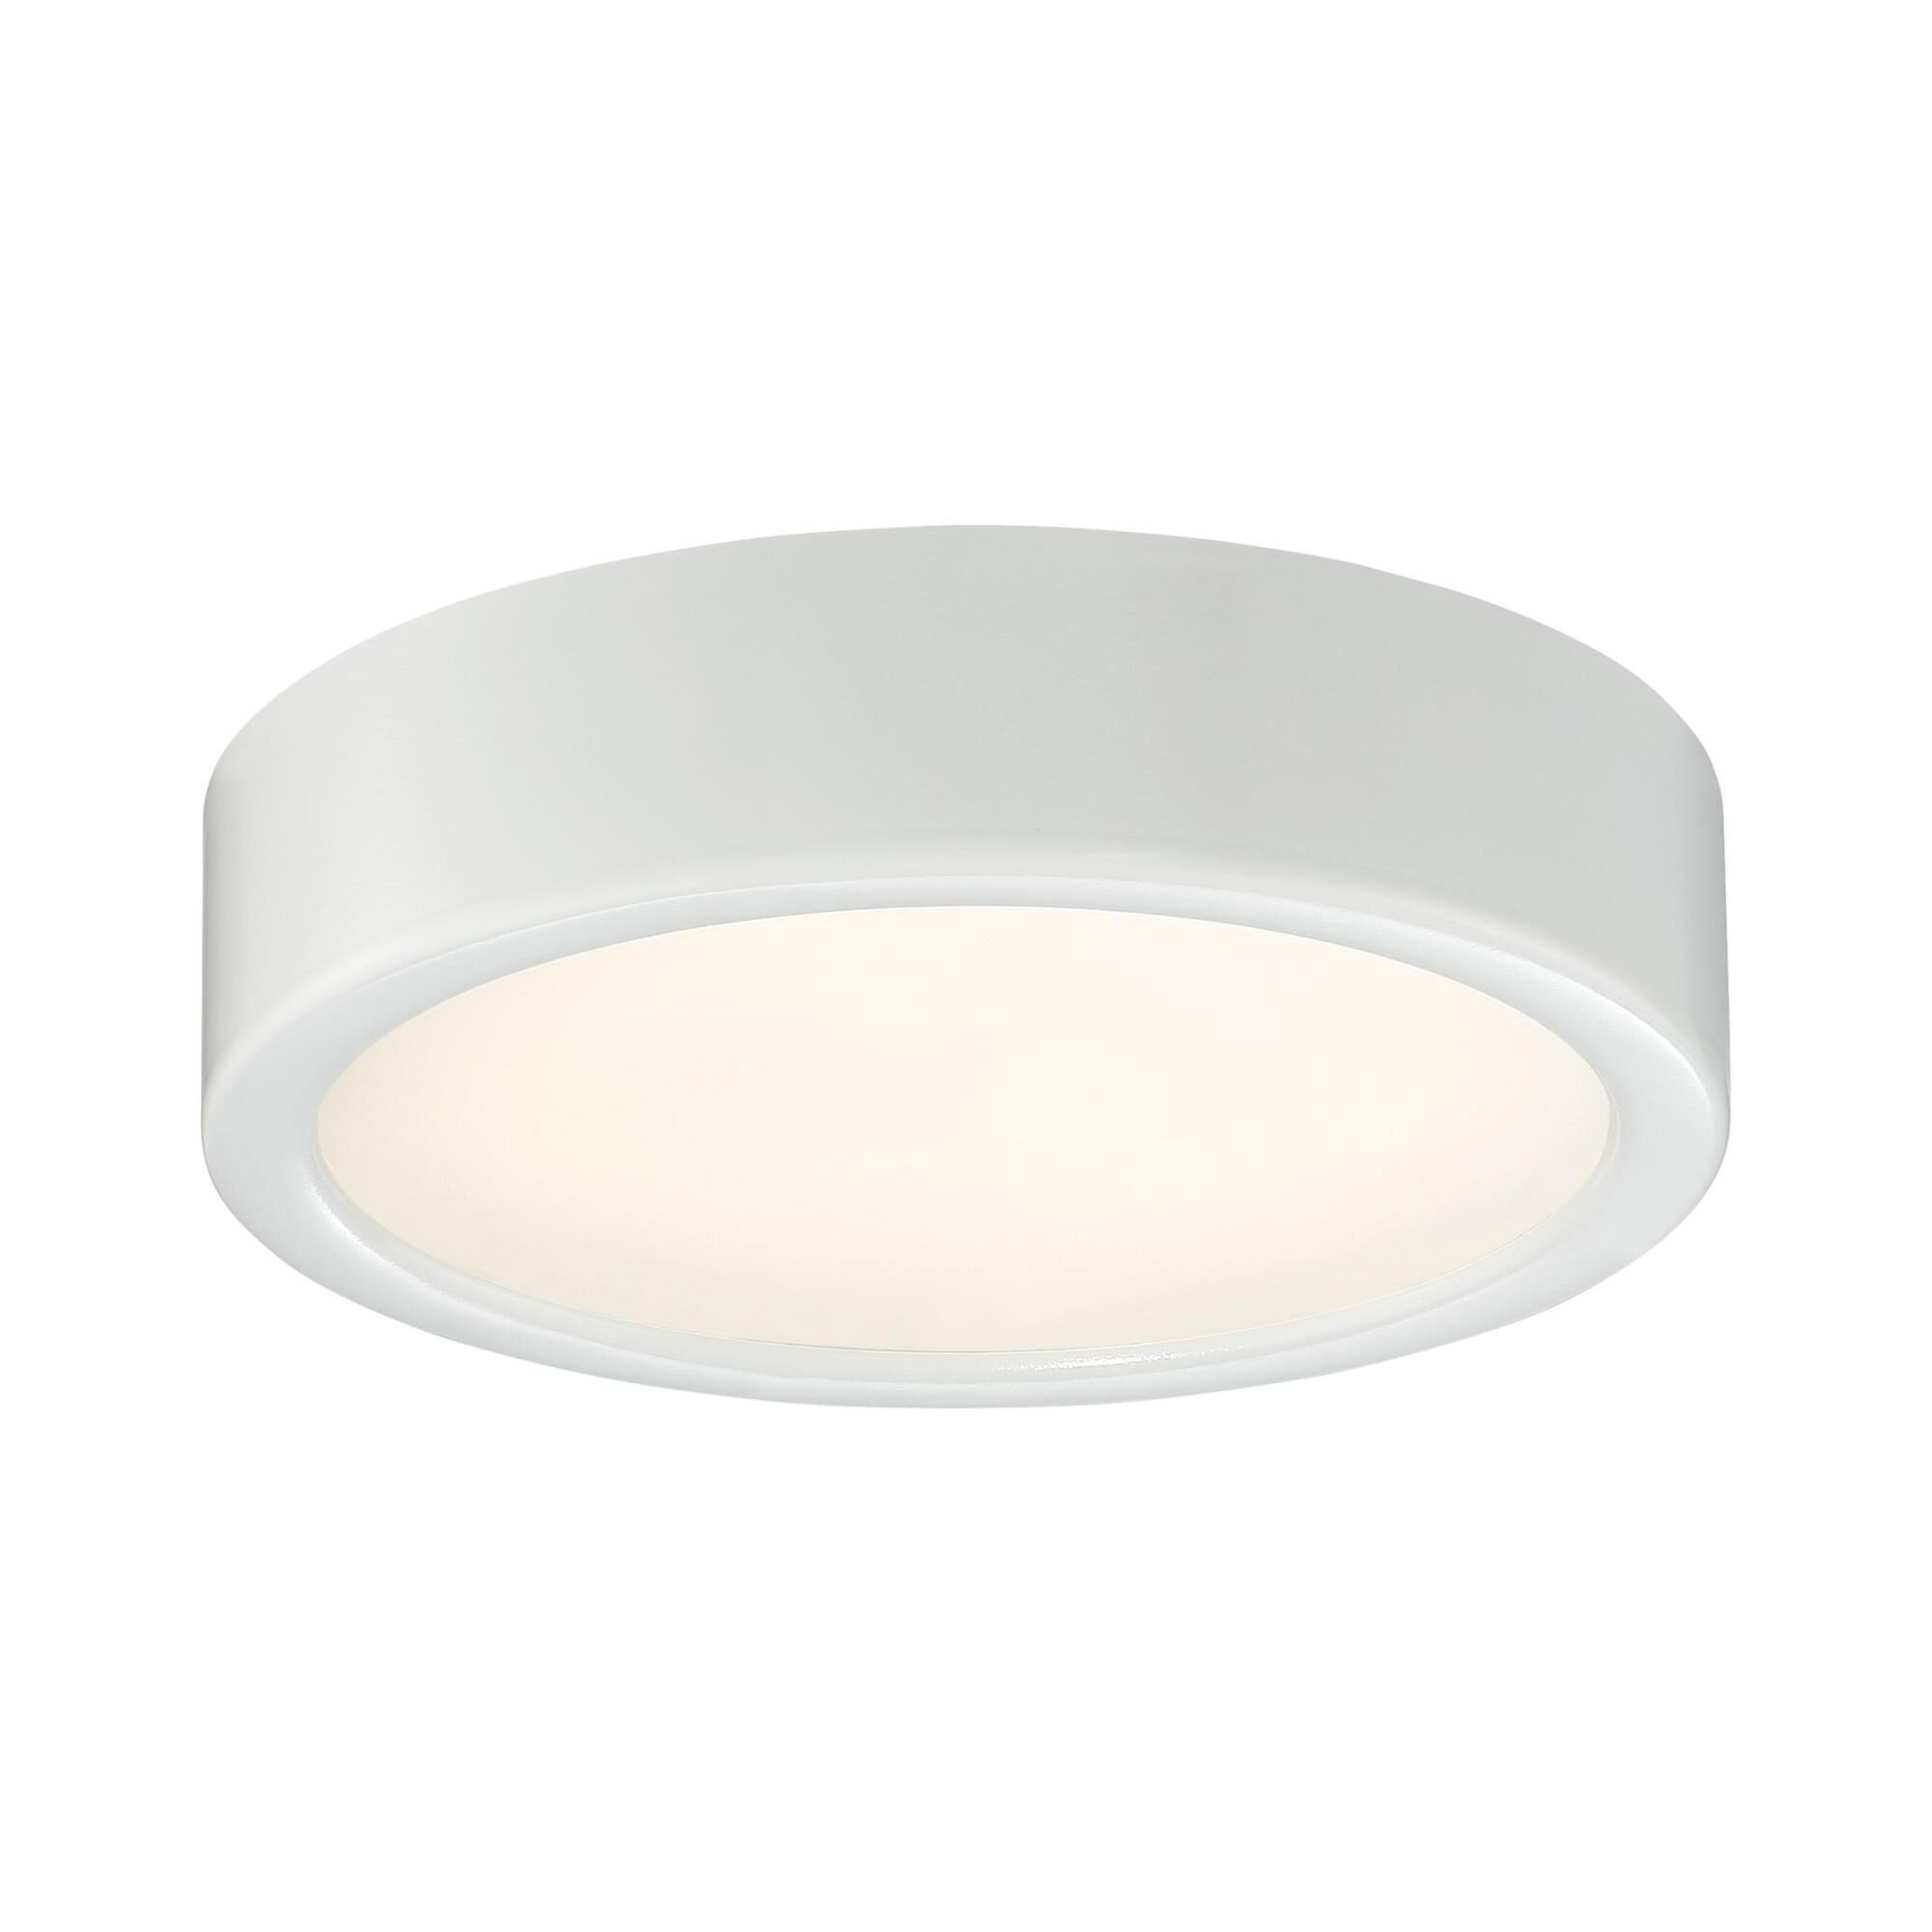 Kovacs 6 Inch 1 Light Led Flush Mount - P840-044-l - Transitional